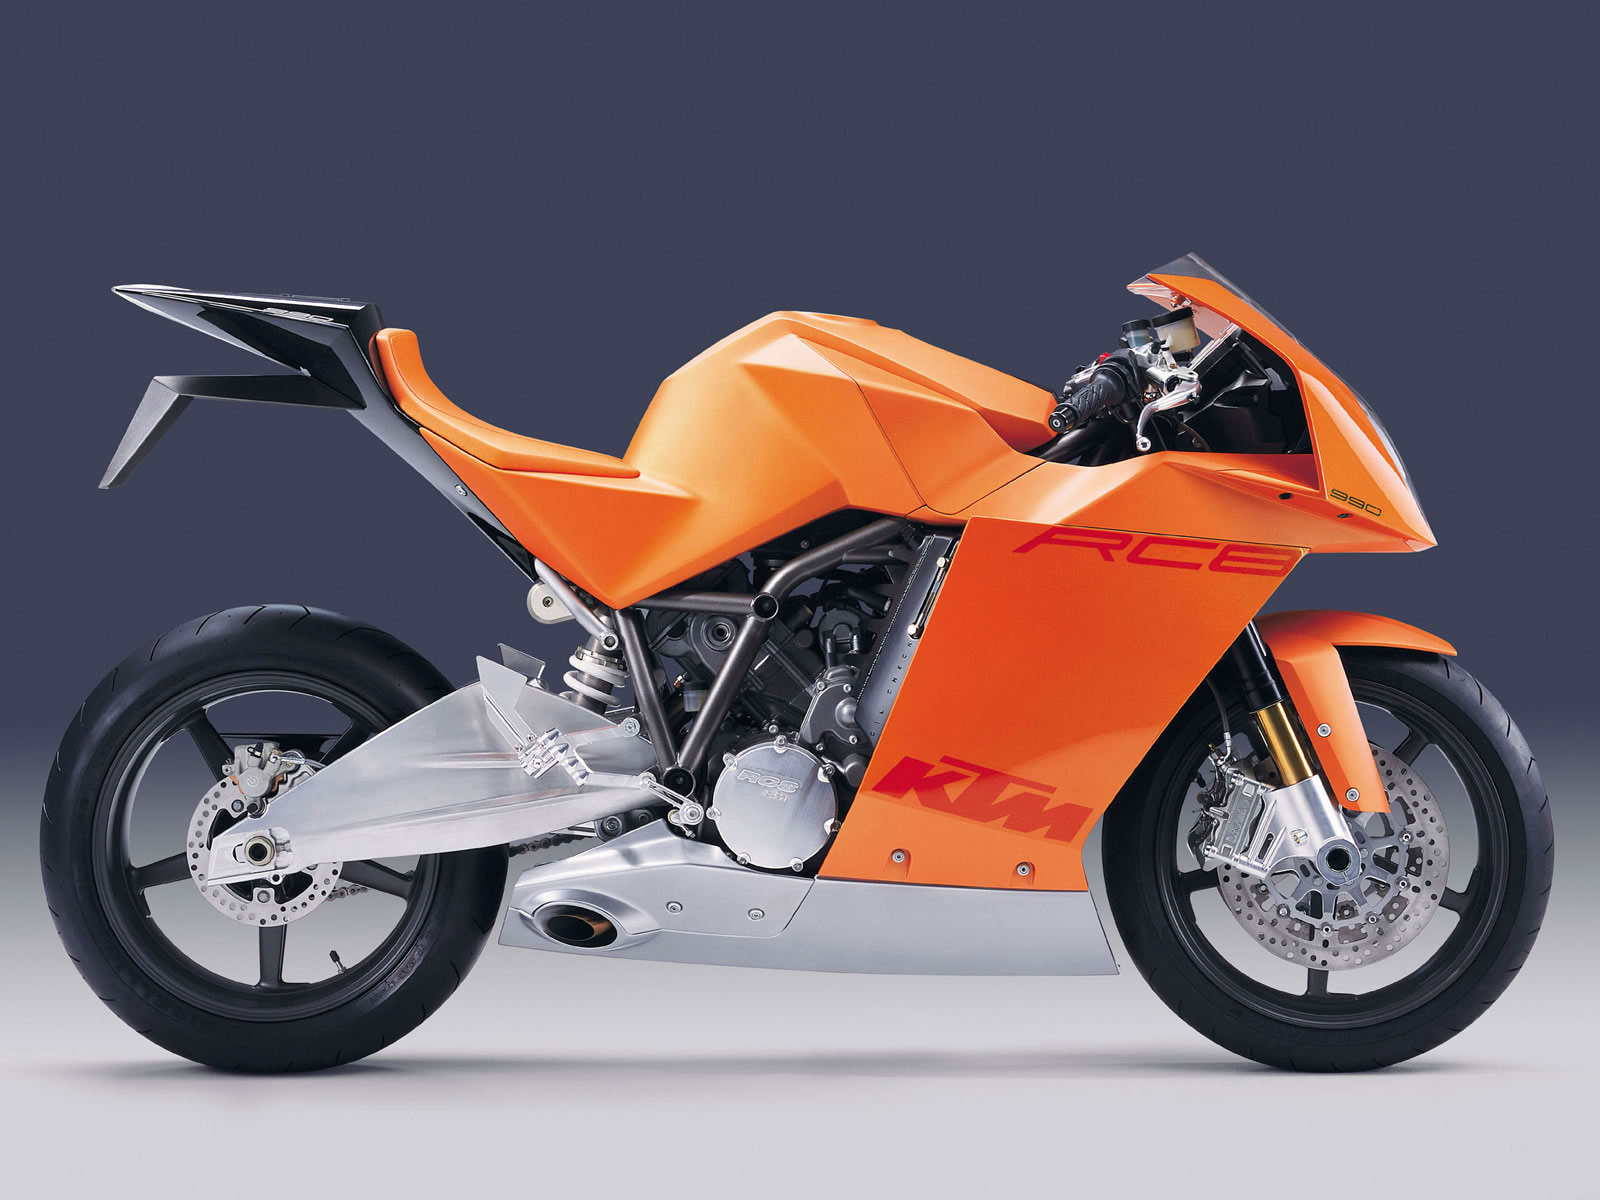 KTM 990 RC8 Concept motorcycle wallpaper. Insurance information